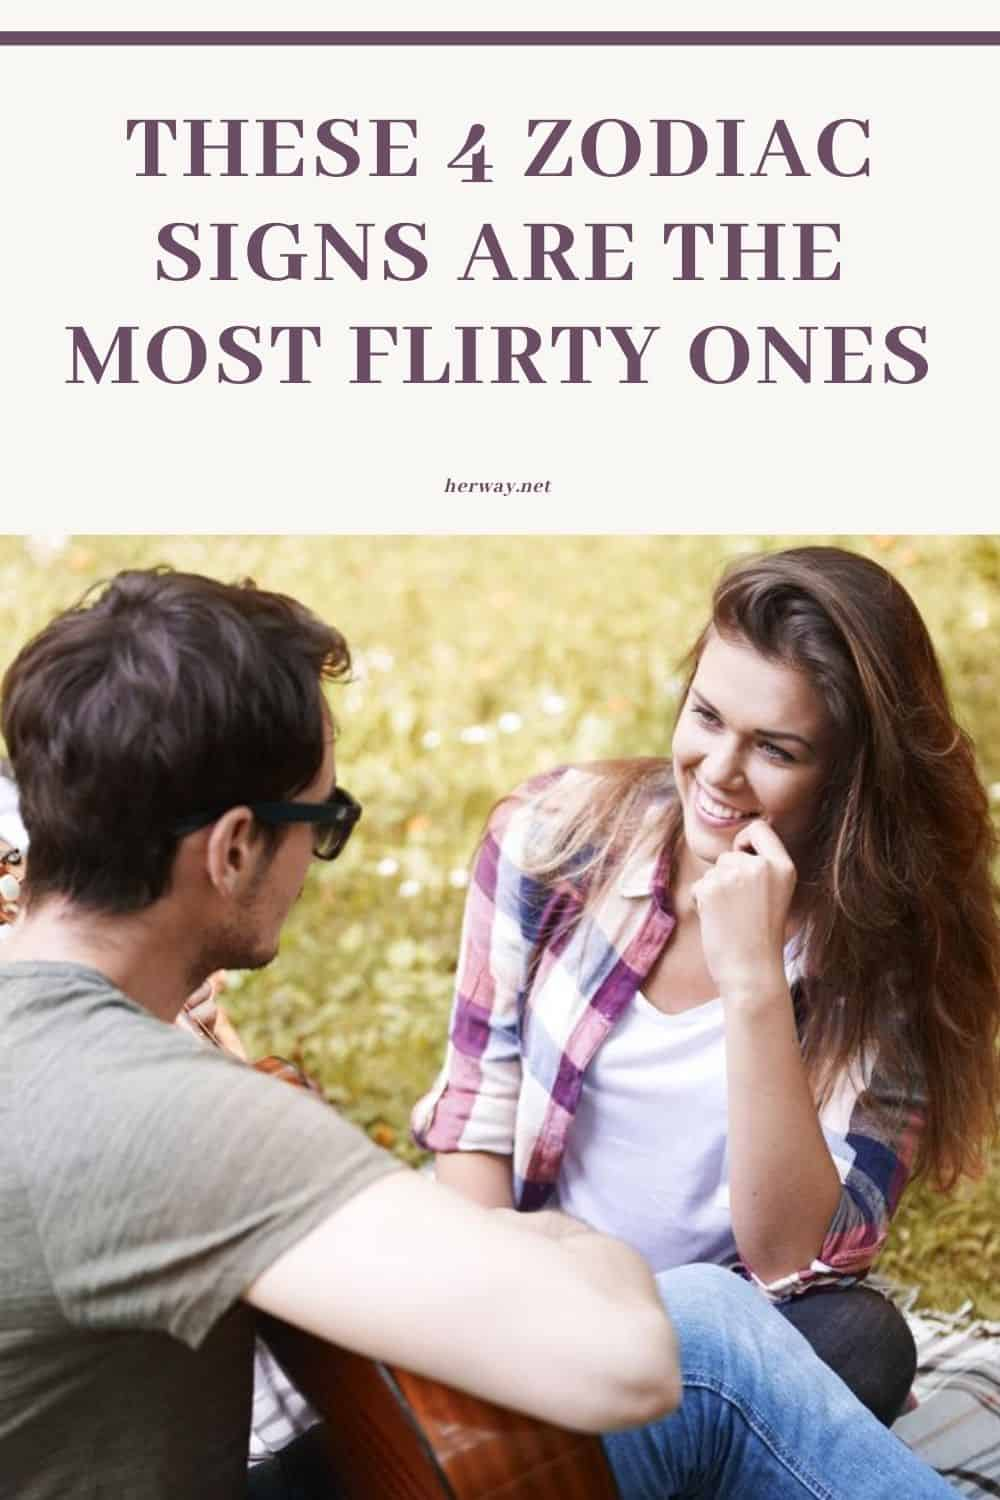 These 4 Zodiac Signs Are The Most Flirty Ones